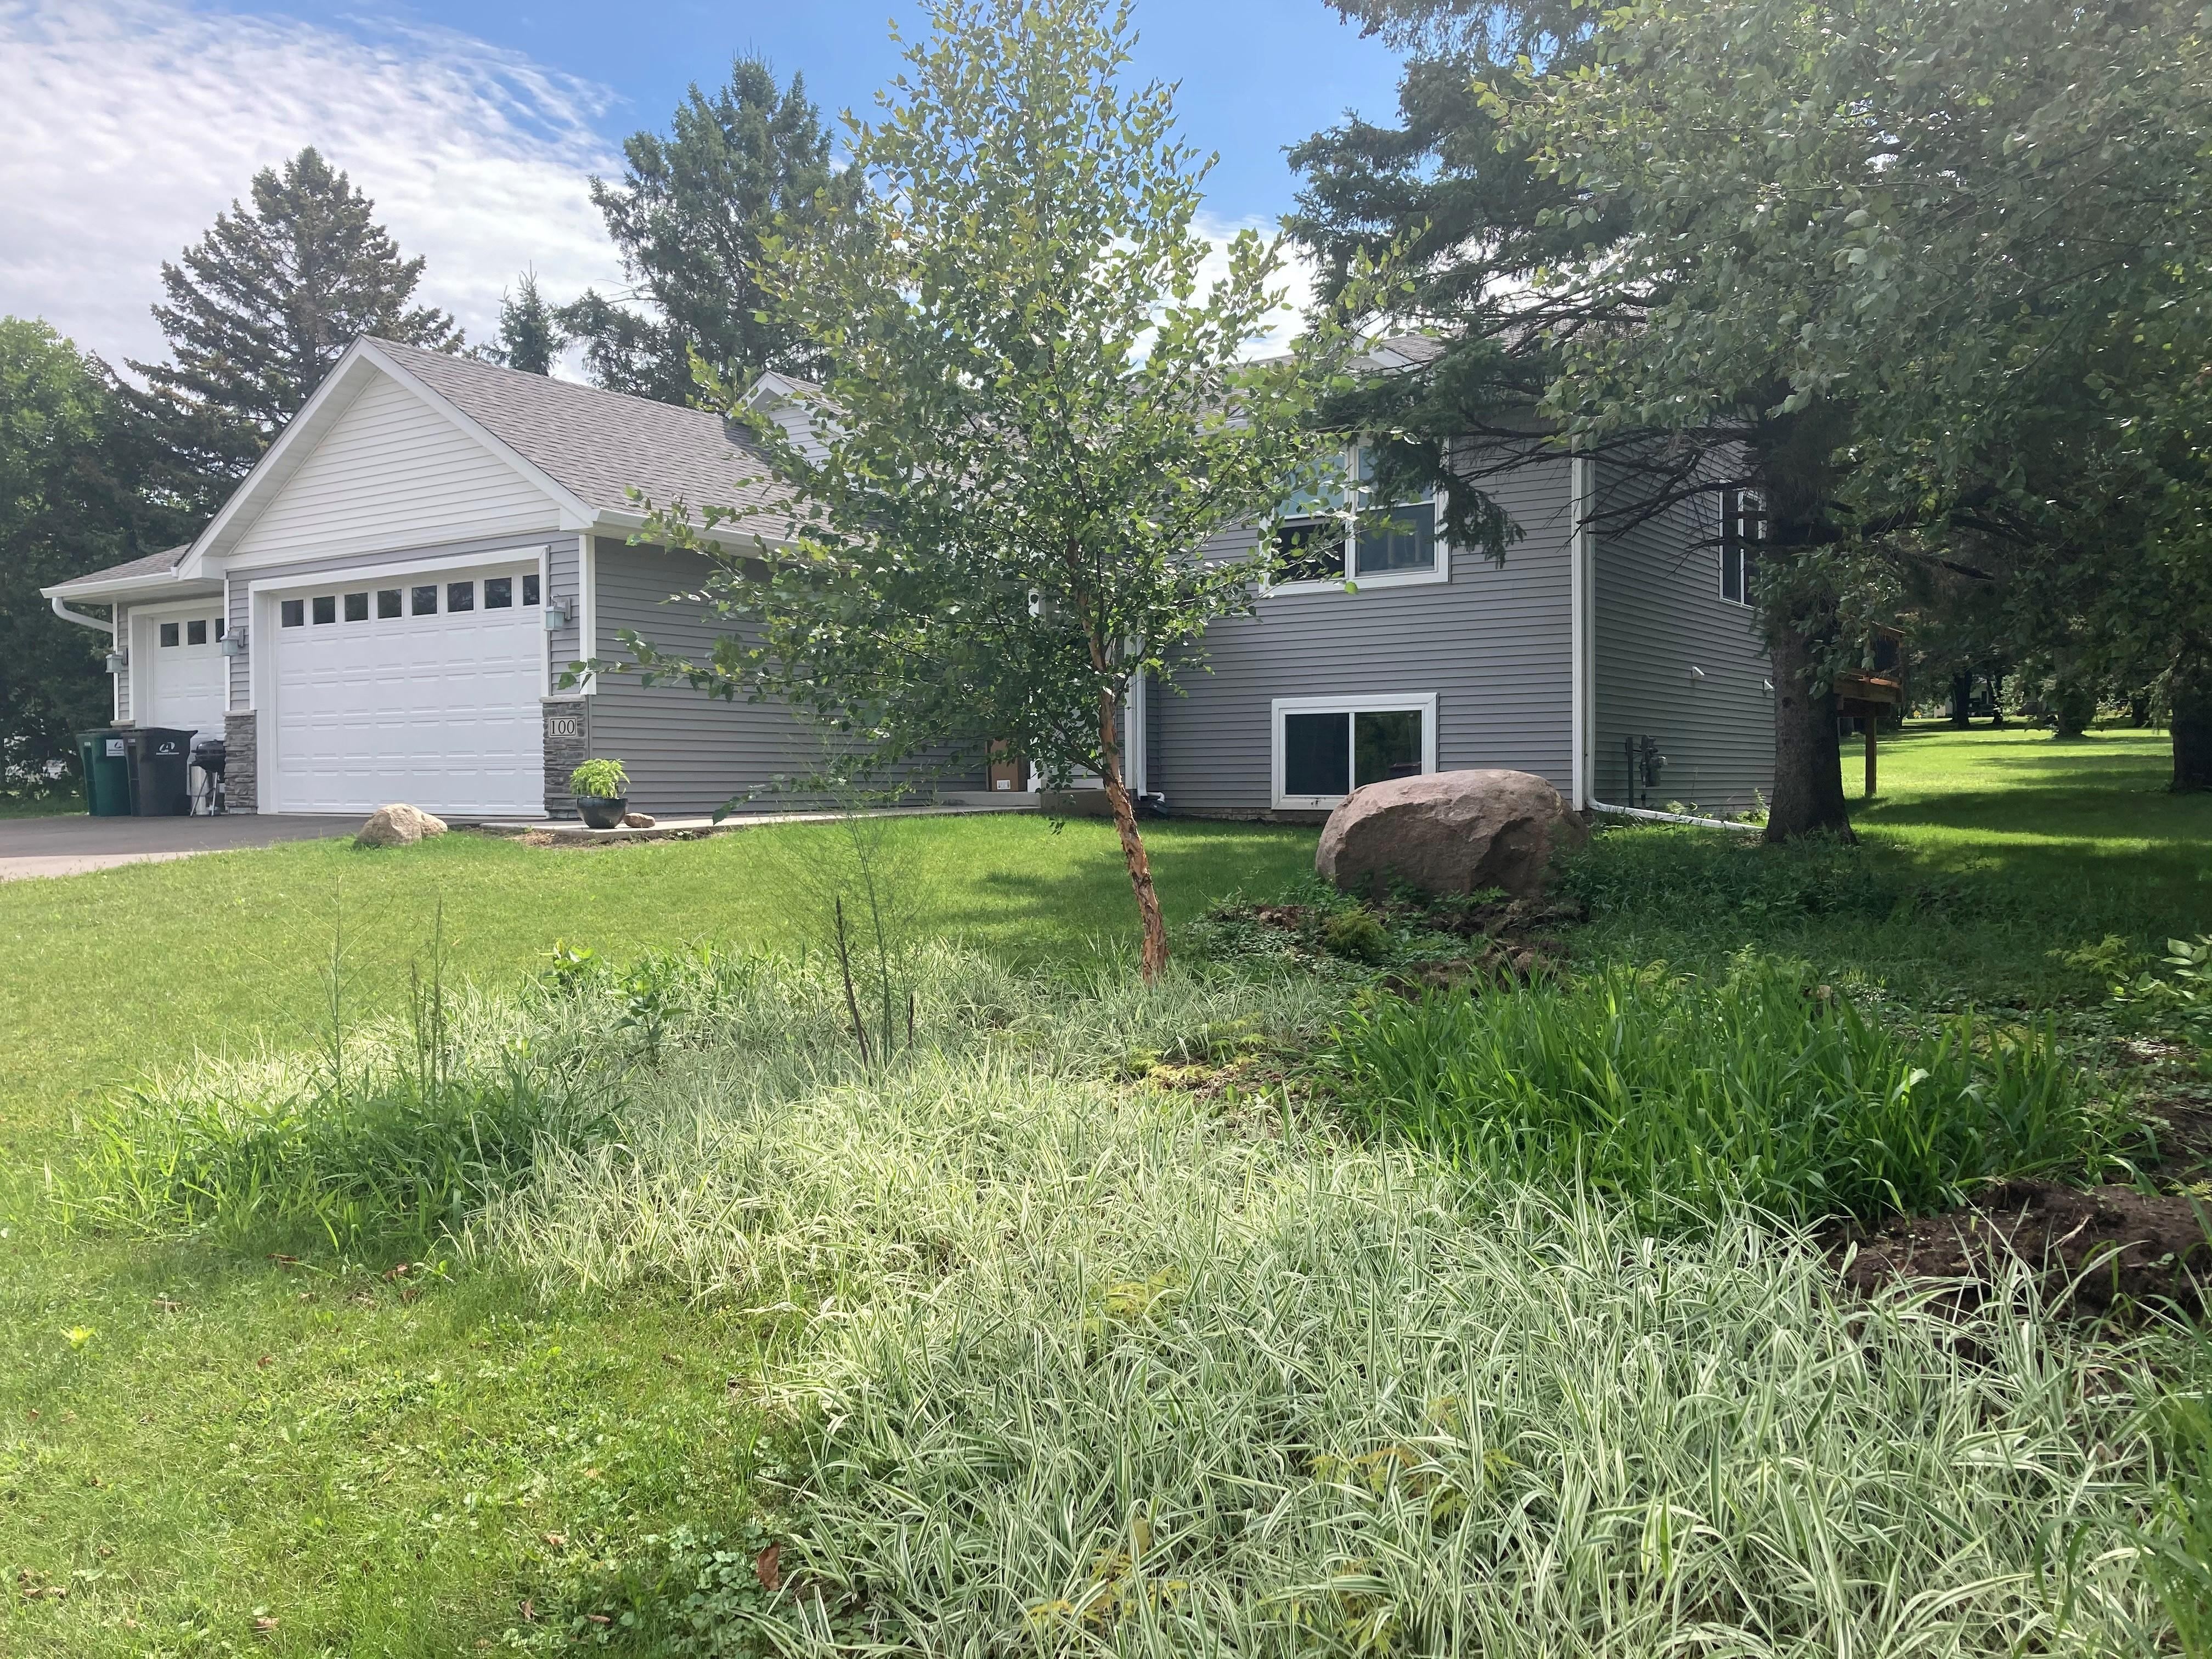 112 S Meadow Lane Property Photo - Roberts, WI real estate listing